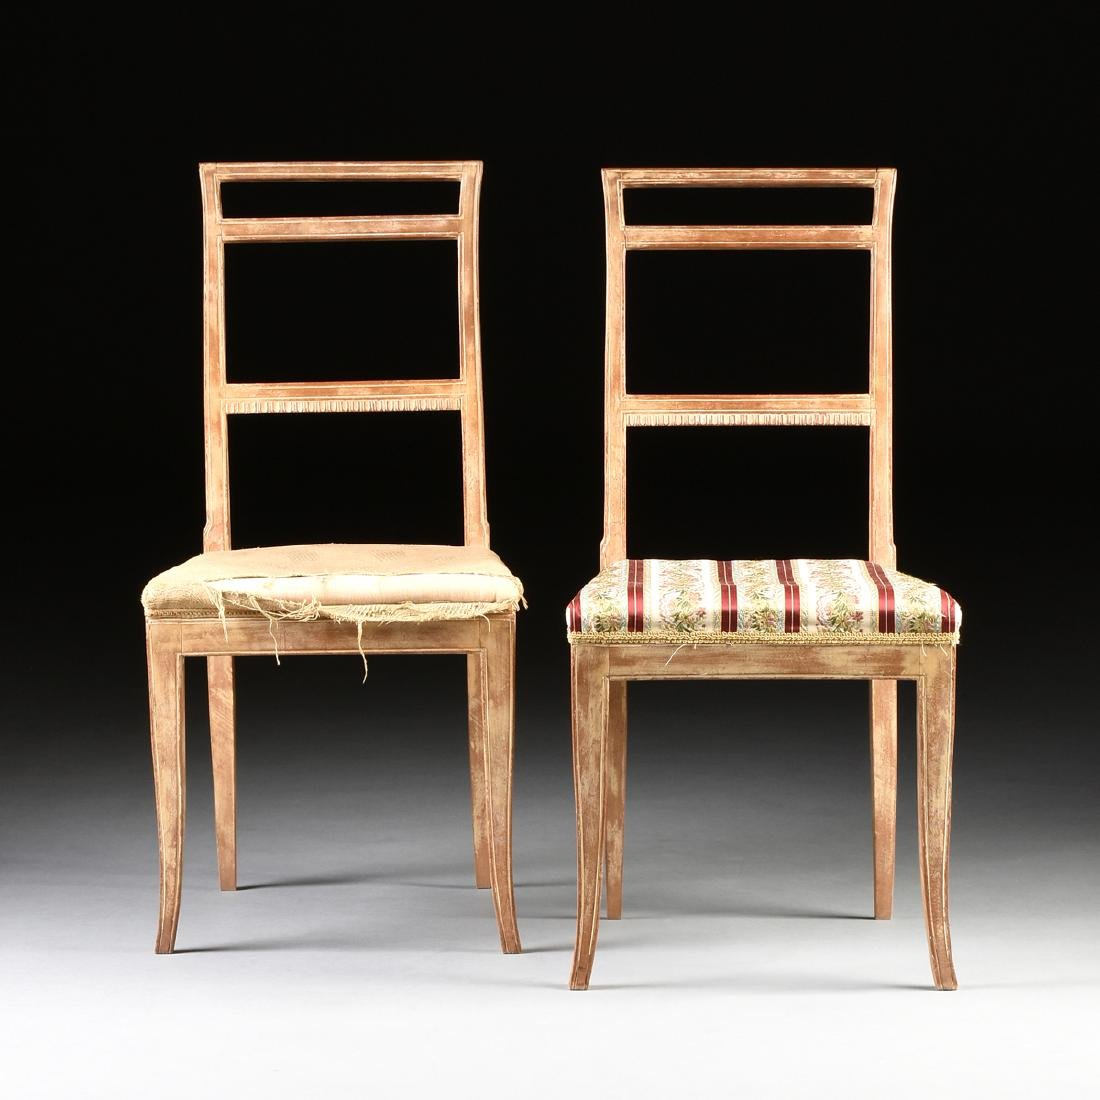 A PAIR OF FRENCH EMPIRE STYLE MAHOGANY SIDE CHAIRS,